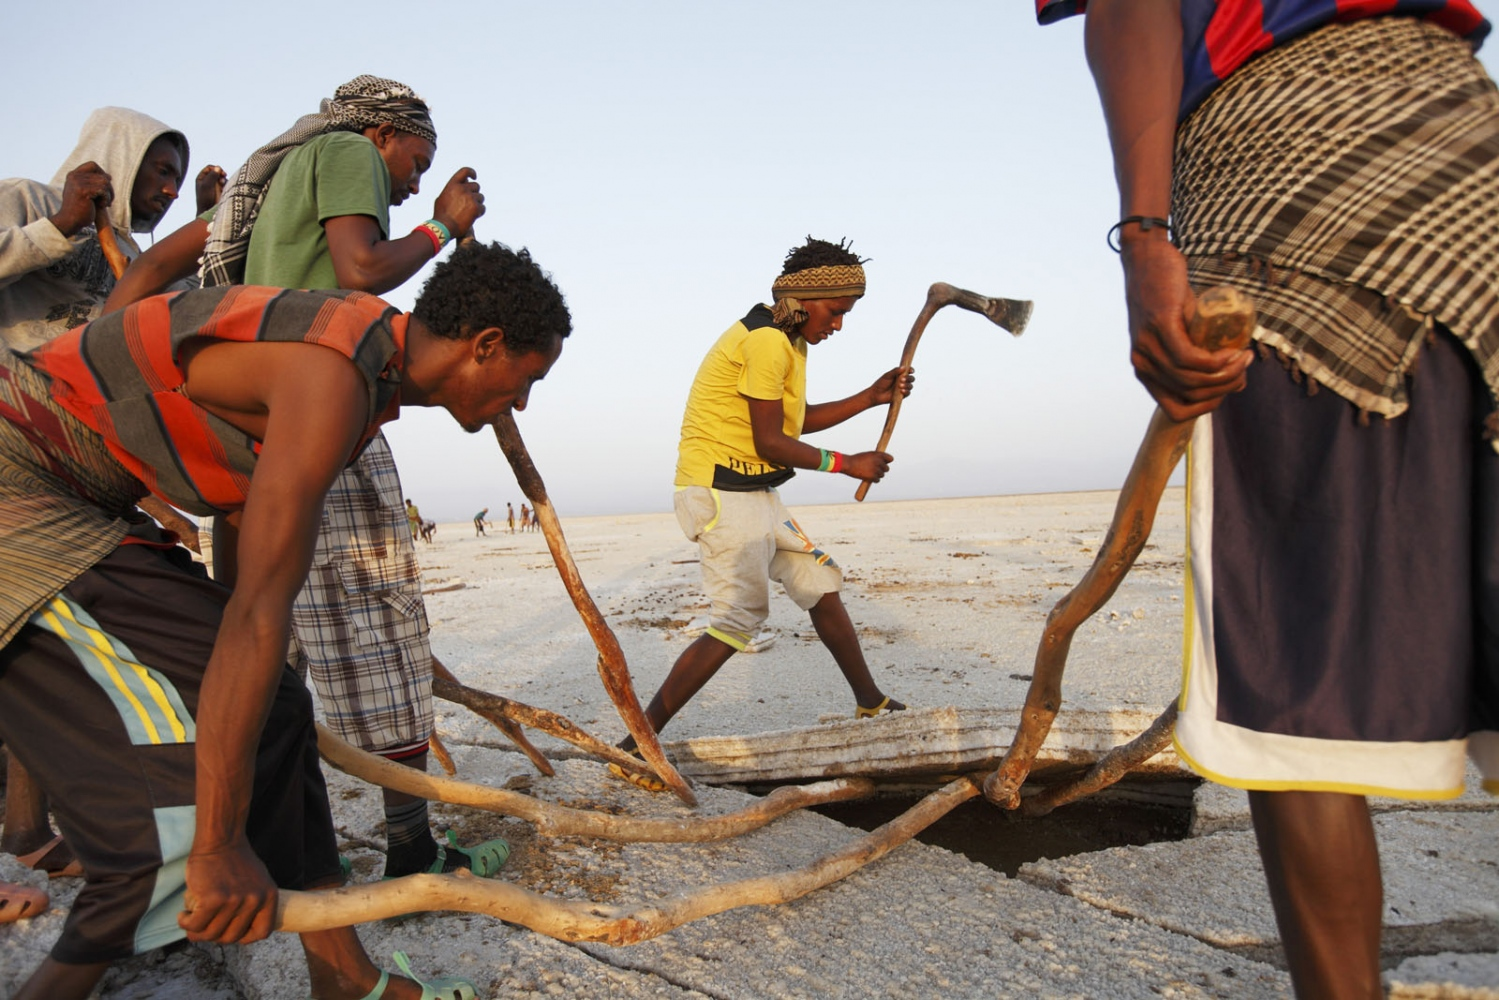 Salt workers literally cut the salt from the ground in the Danakil Depression. The depression is the lowest and hottest inhabited place on our planet and workers must work in very high temperatures with no cover. Afar, Ethiopia.